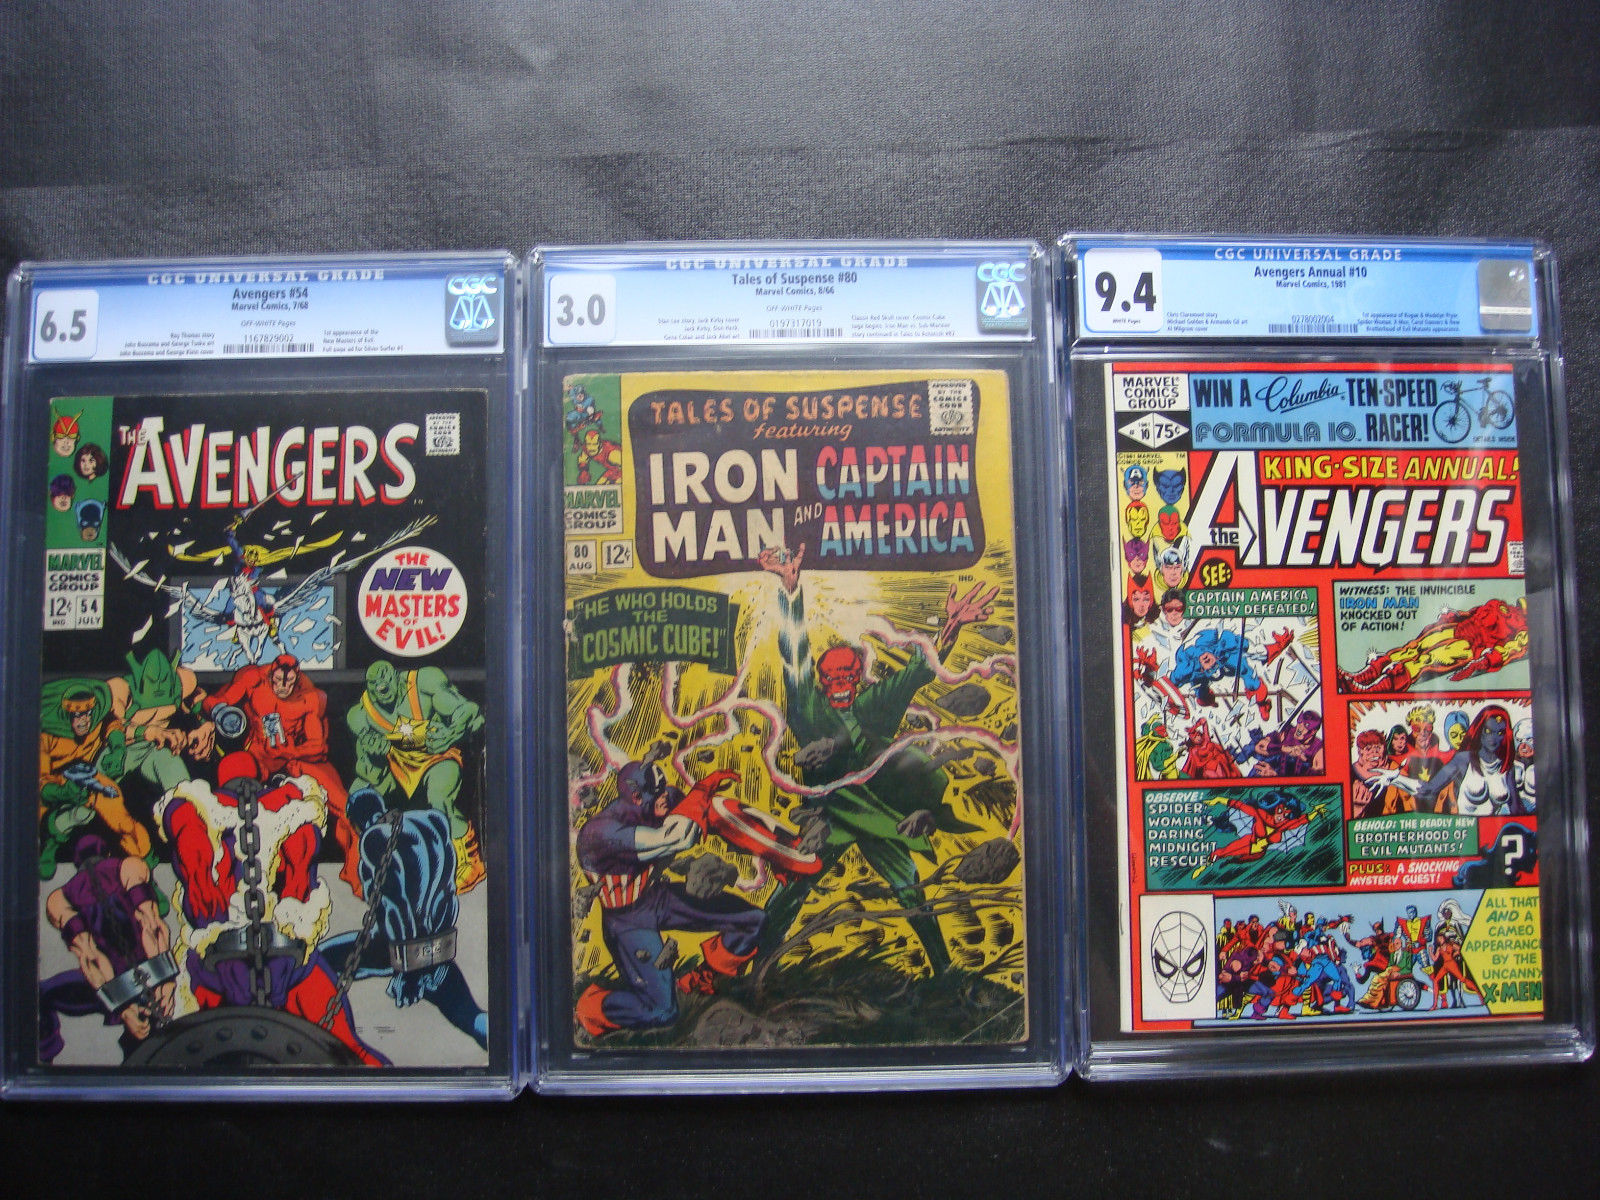 Avengers 54 CGC 6.5 Annual 10 9.4 AND Tales Of Suspense 3.0 3 Book CGC Lot